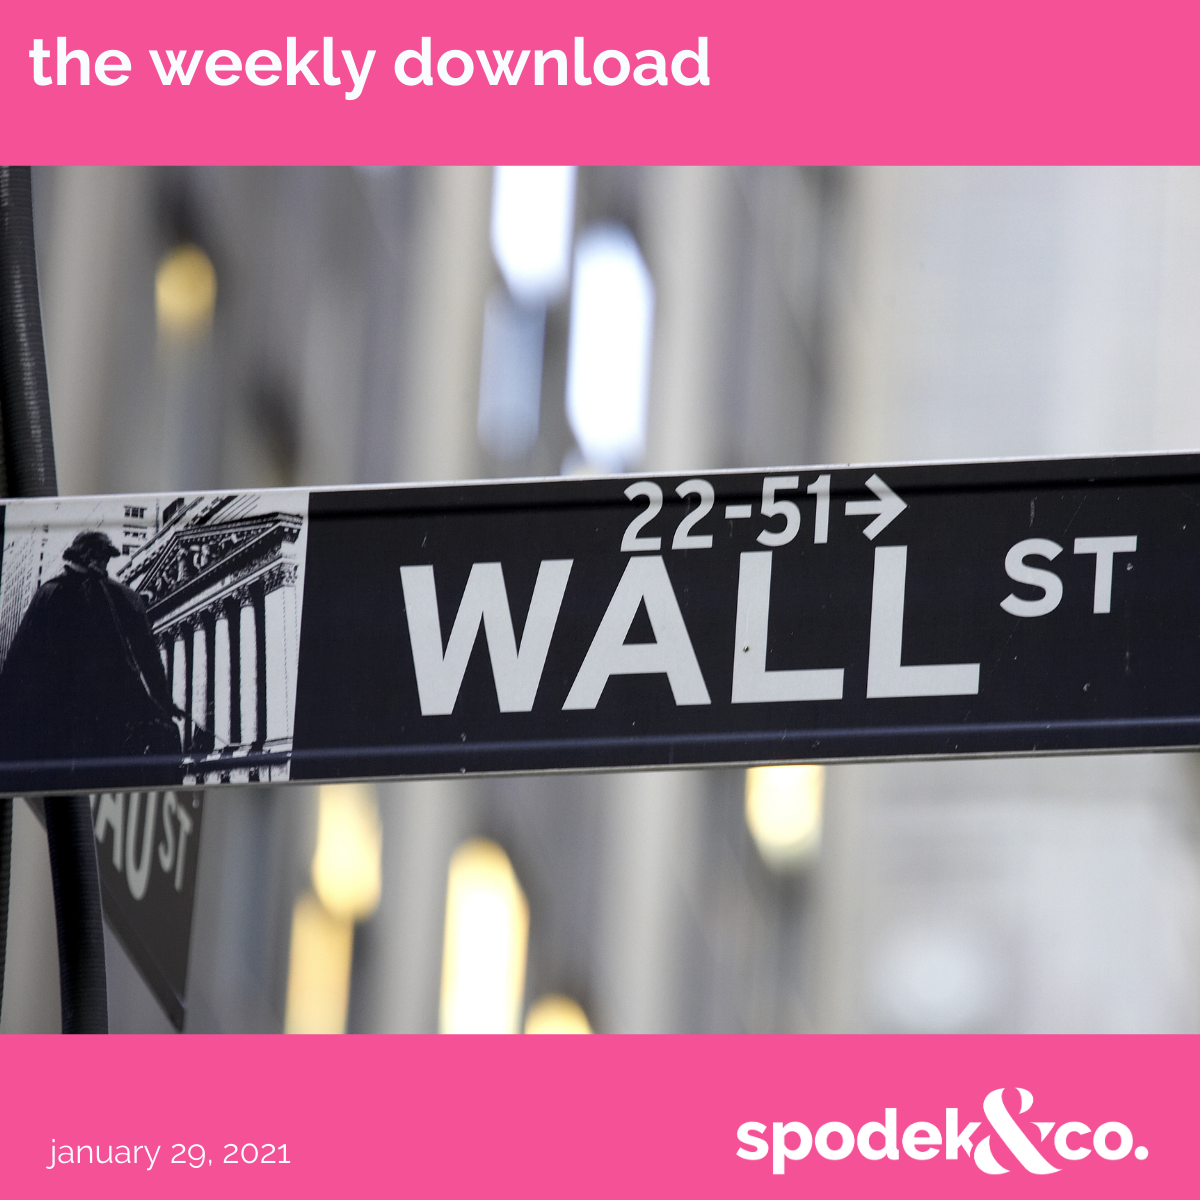 The Weekly Download – January 29, 2021